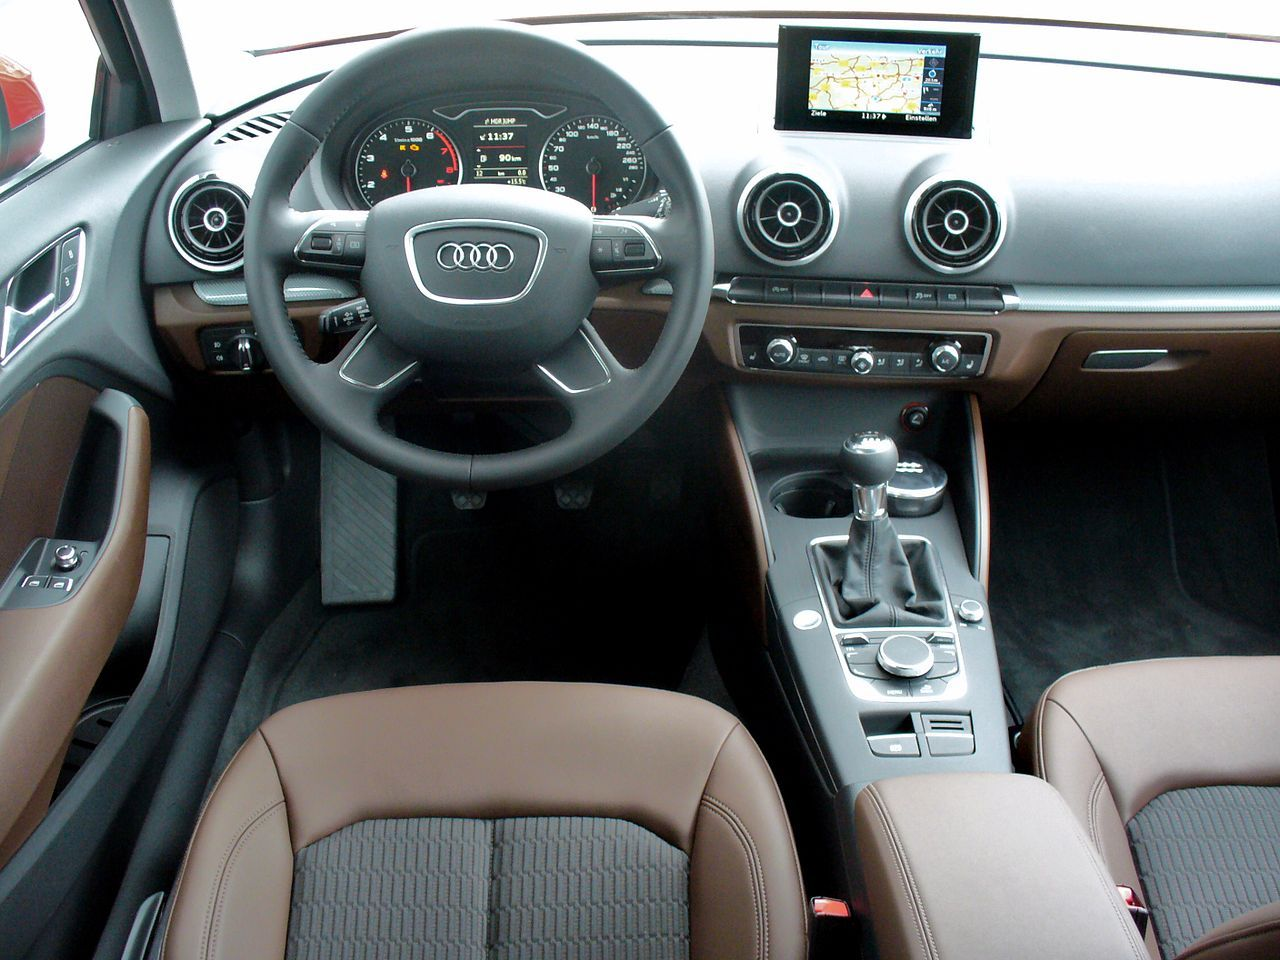 Audi A3 8V 1.4 TFSI Ambiente Misanorot Interieur - Audi A3 ...